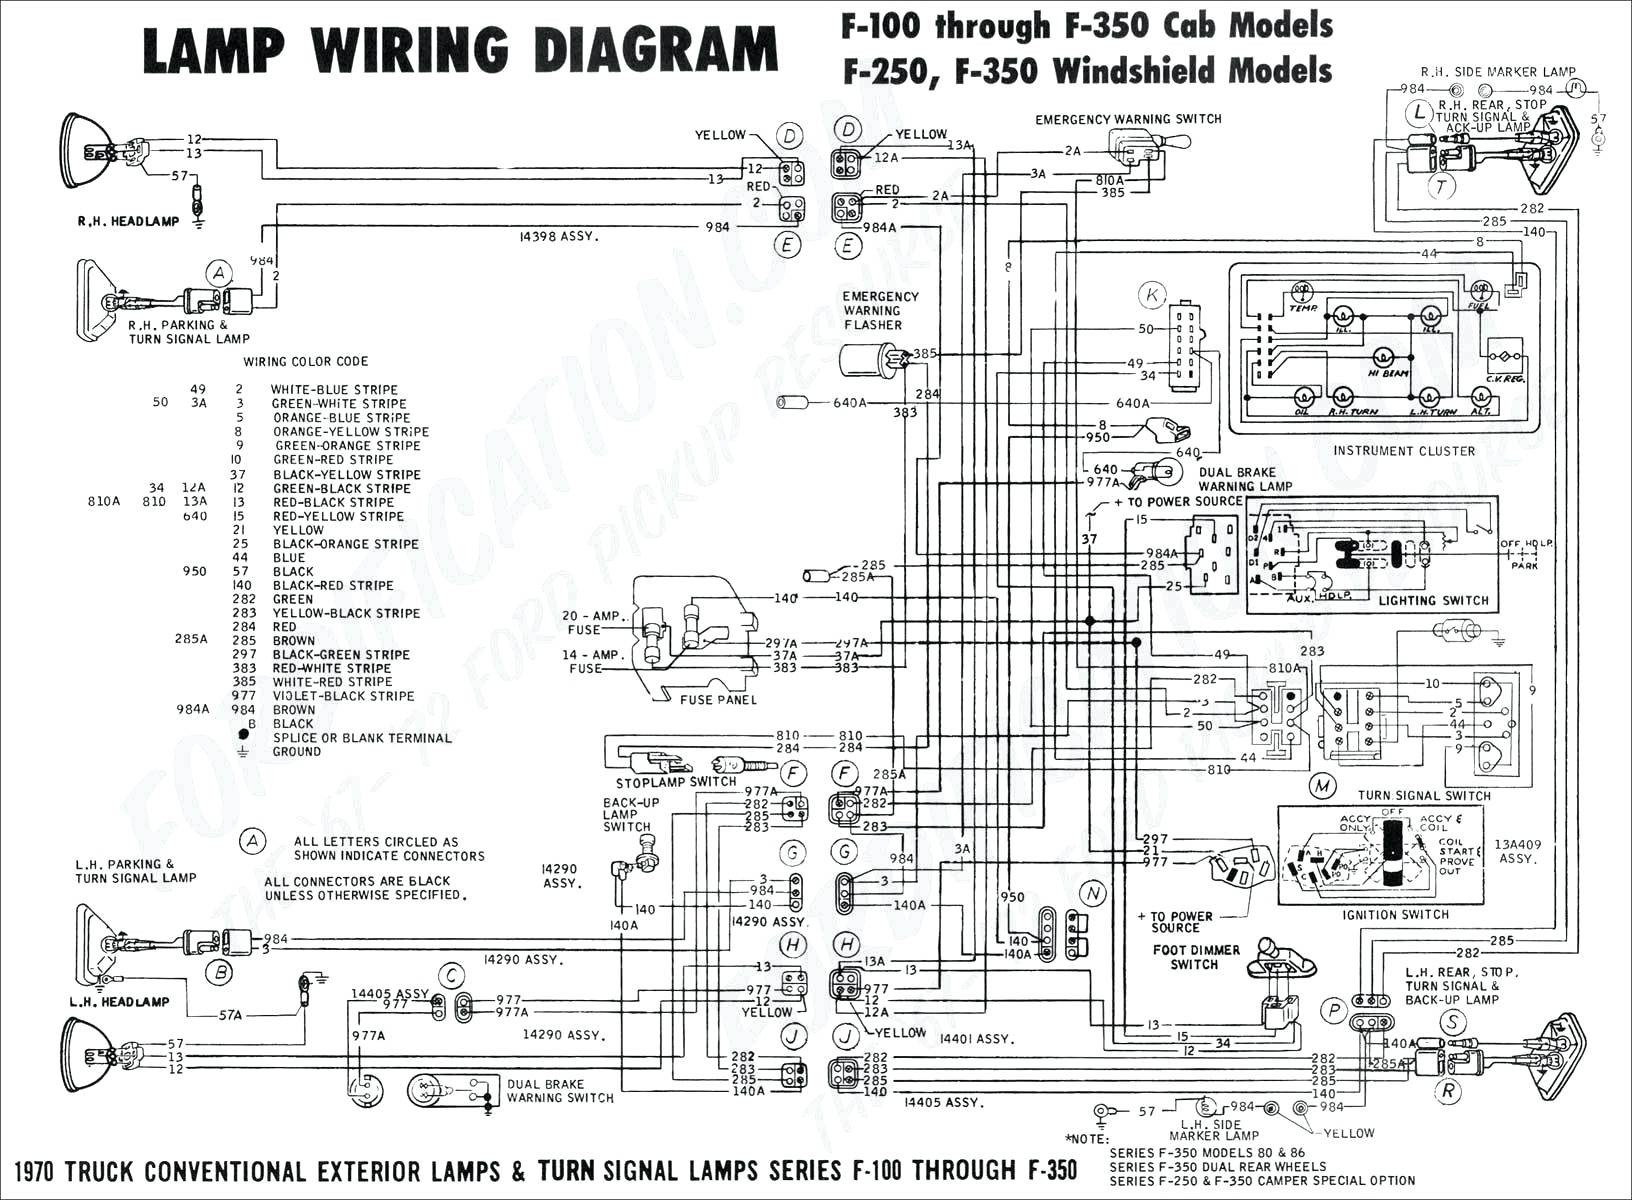 2017 Ford E 450 Wiring Diagram 1970 Chevelle Engine Wiring Routing Wire Diag Yenpancane Jeanjaures37 Fr